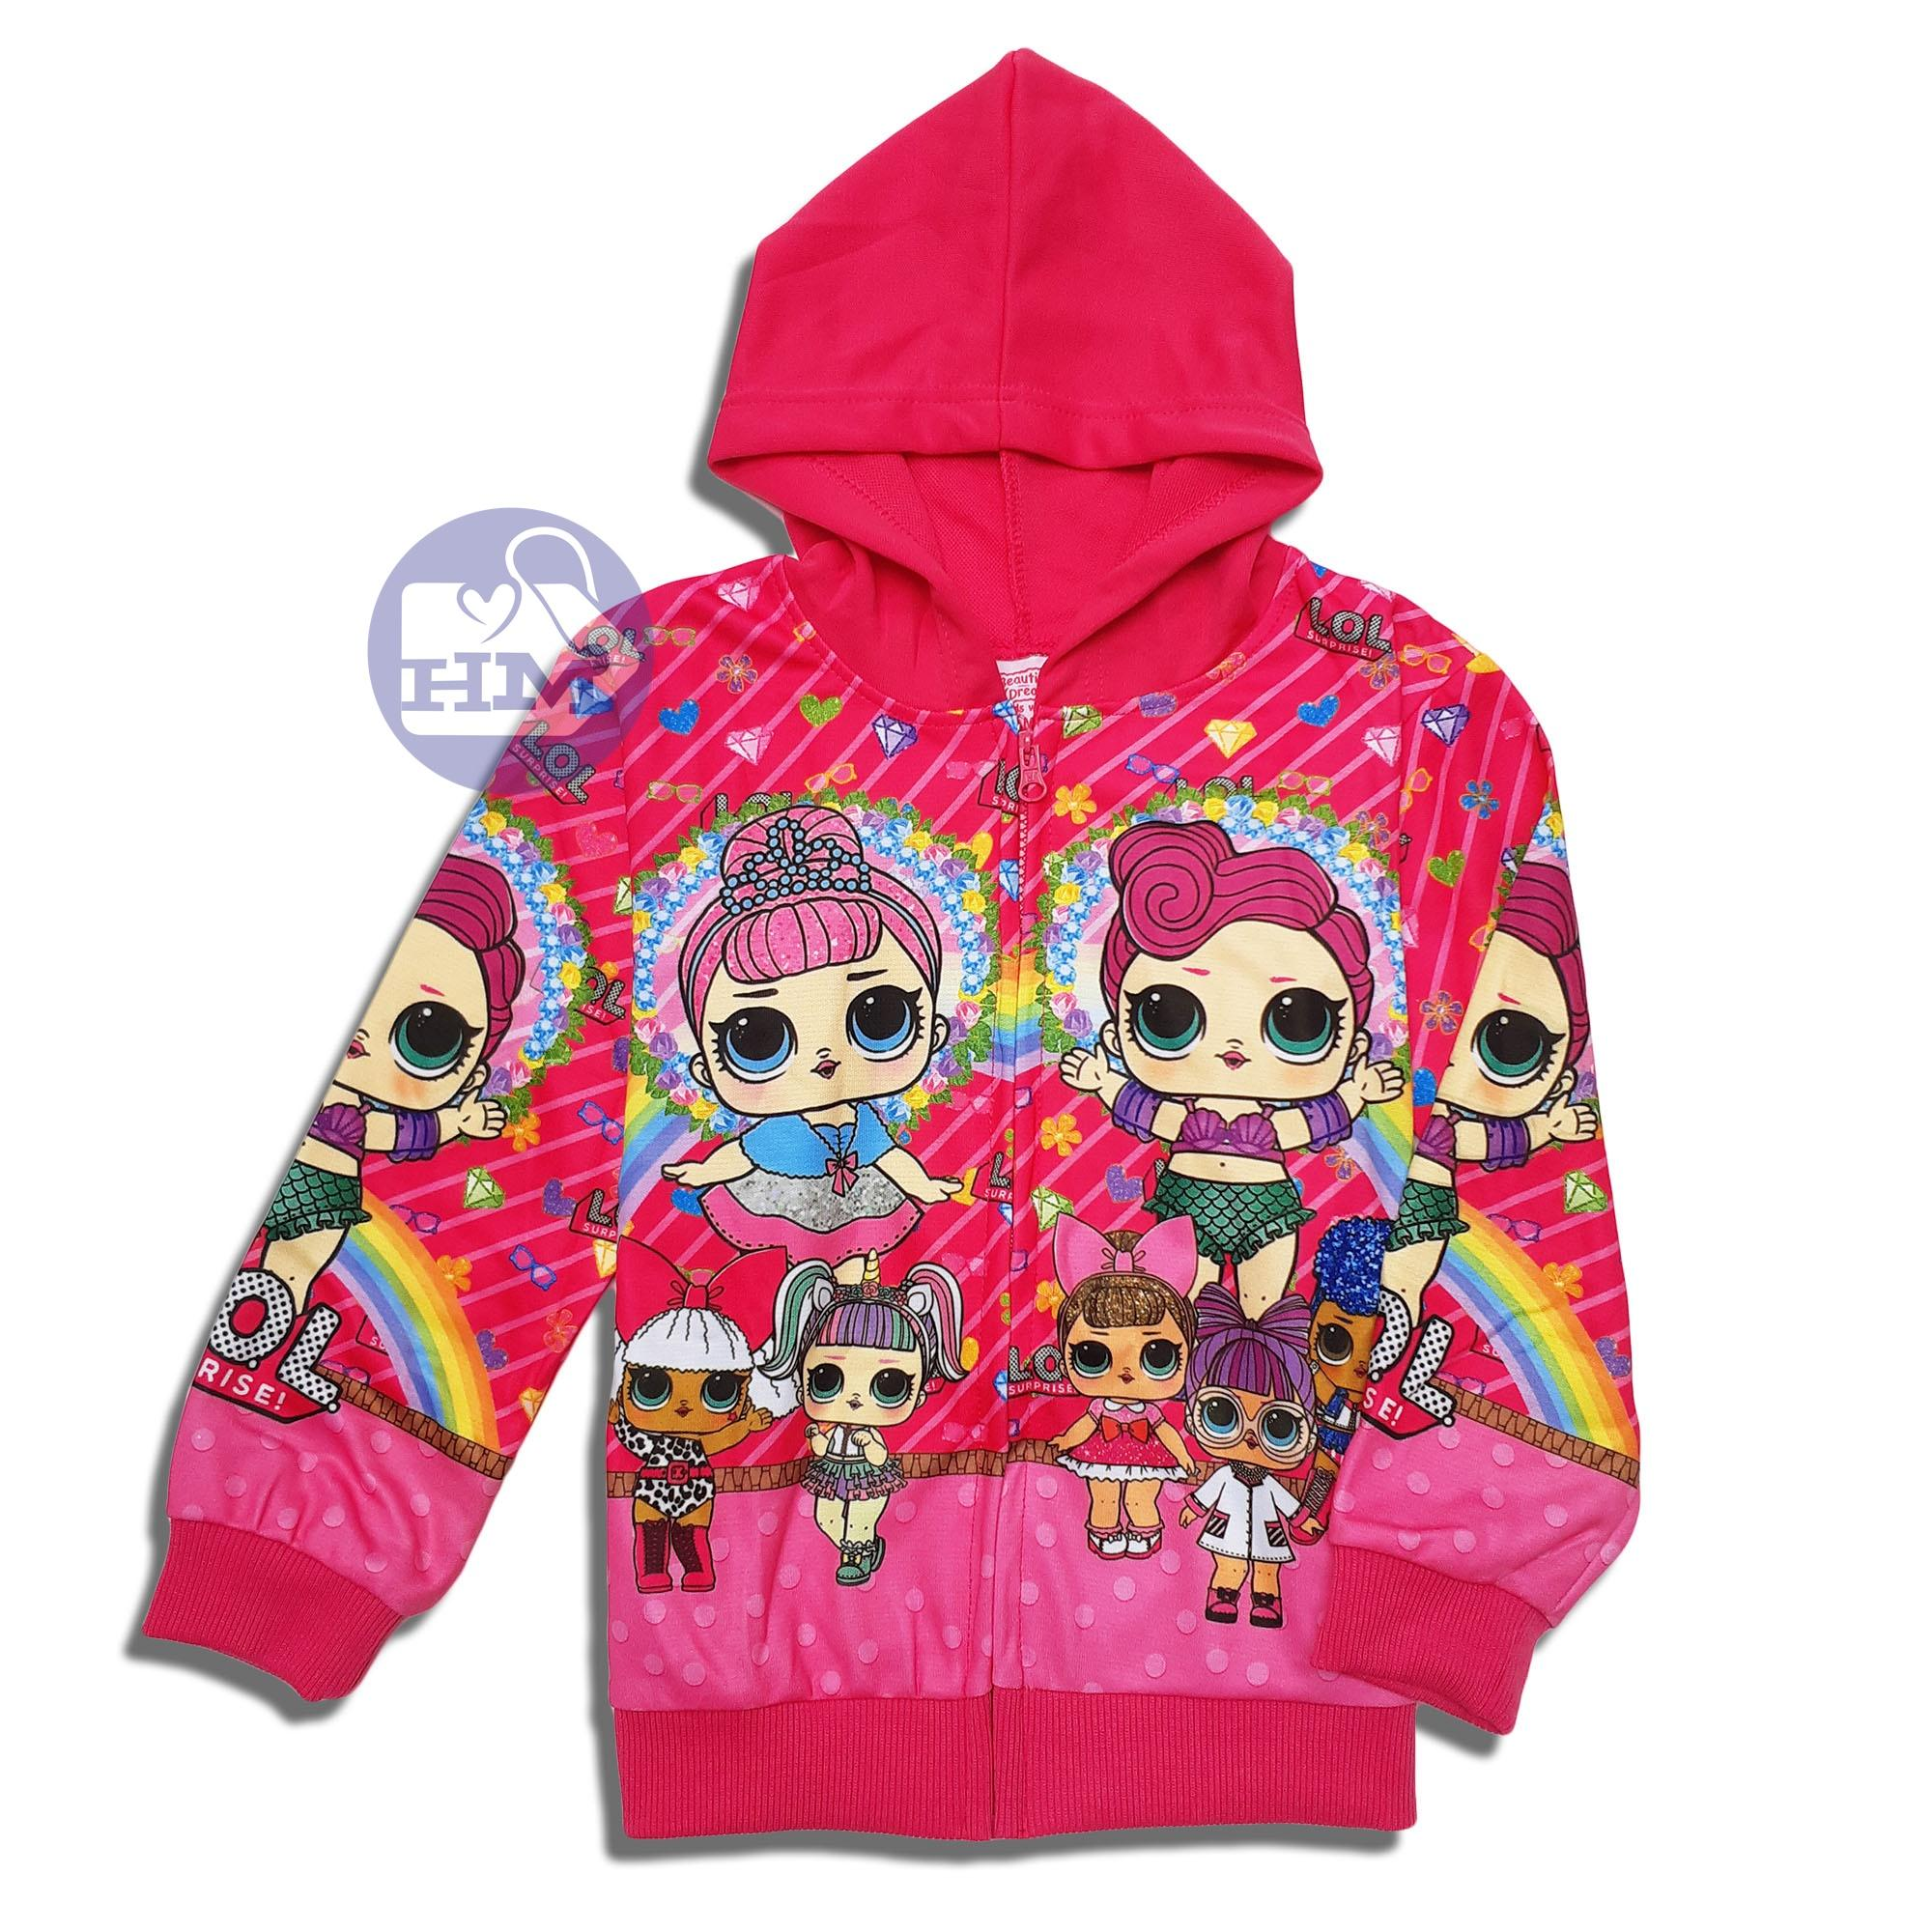 HM Jaket Anak LOL Surprise Jaket Anak Trendy